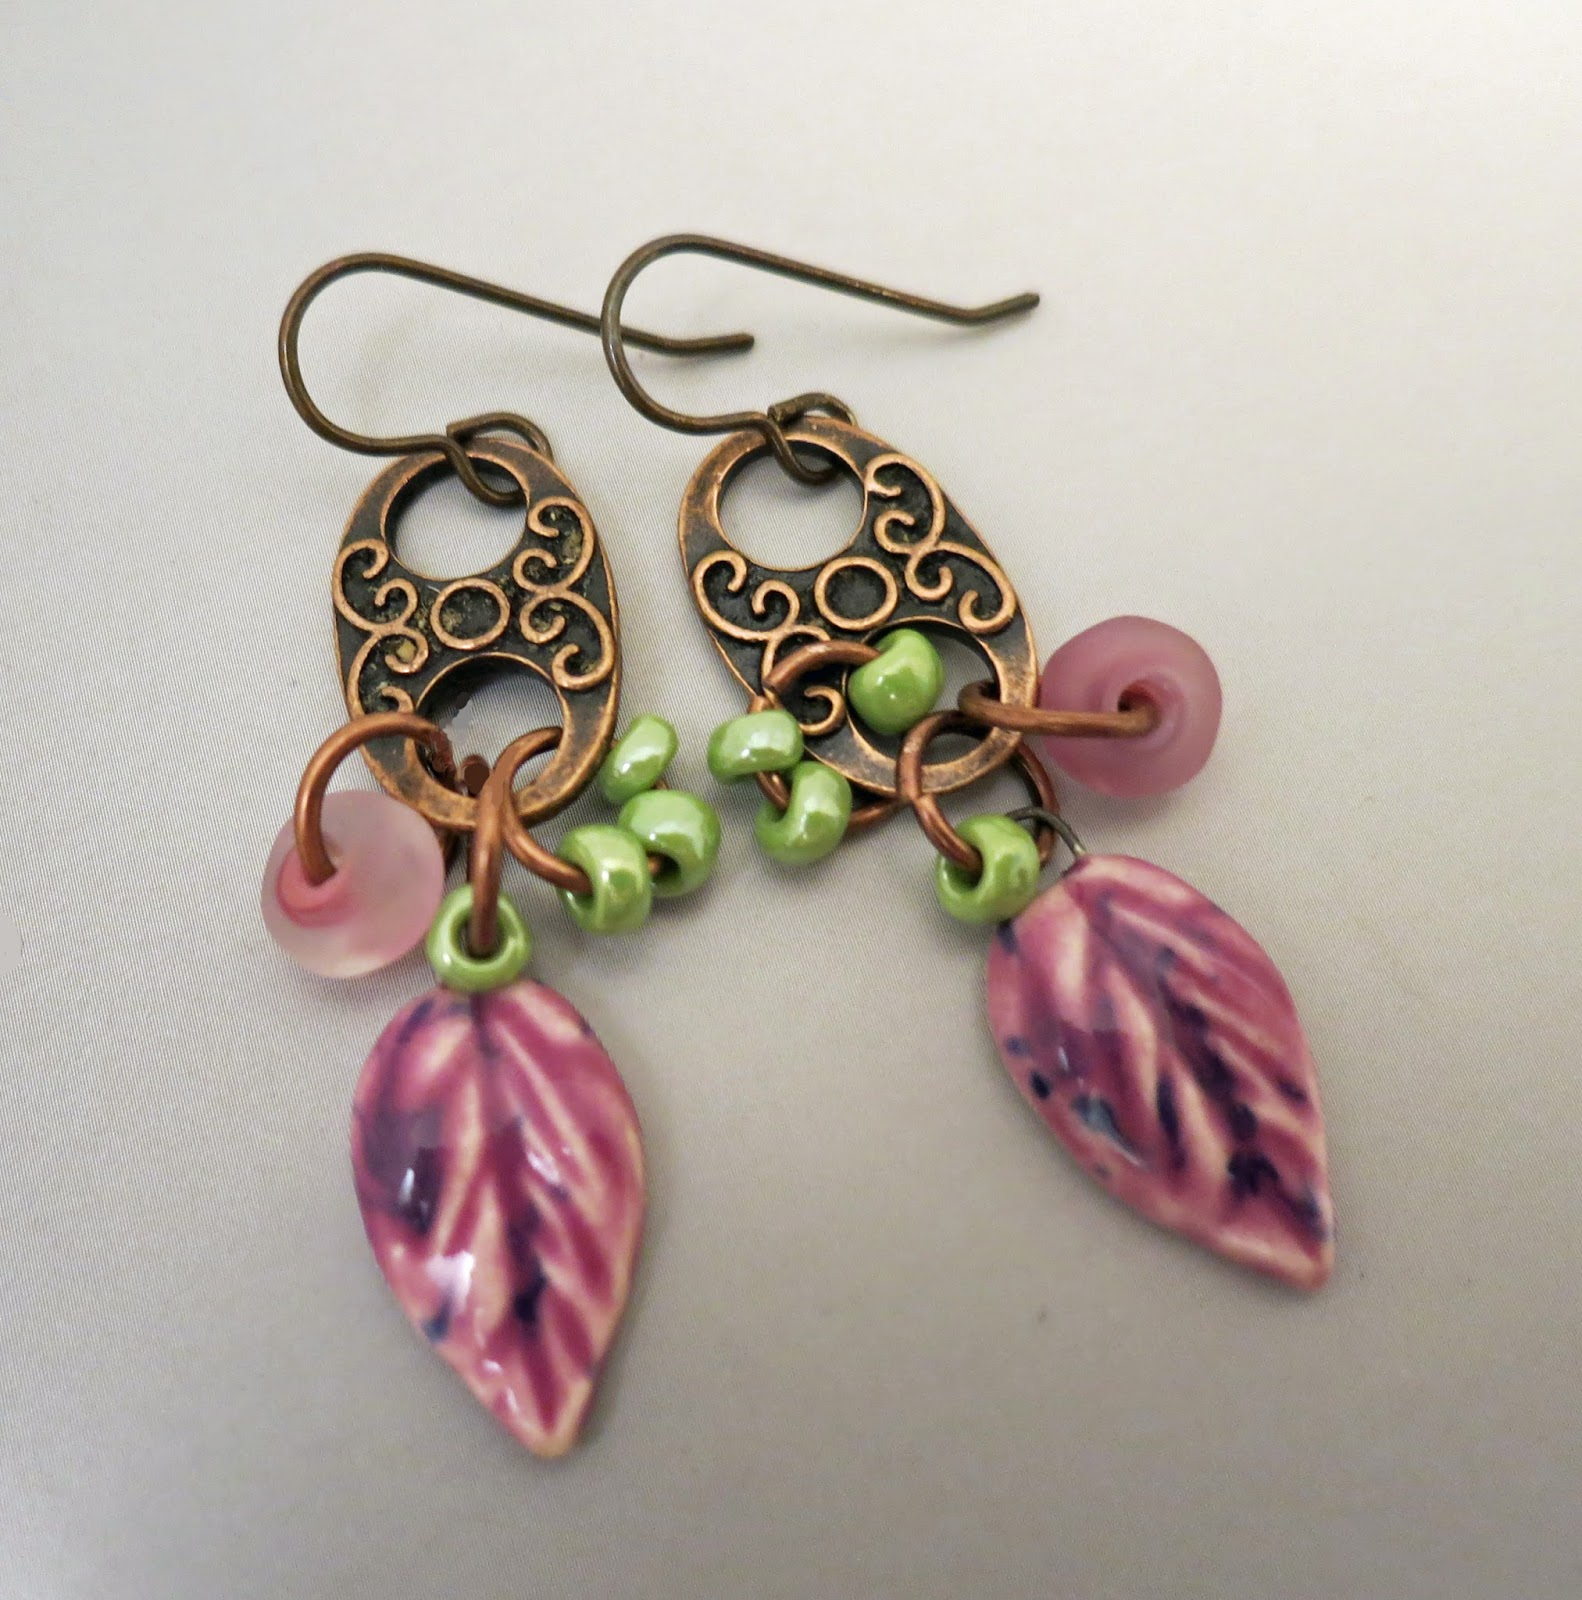 dangled nice with links beads purple the and fall botanicals from have some glass leaves etched everyday green seed movement lime a along lampwork earrings i